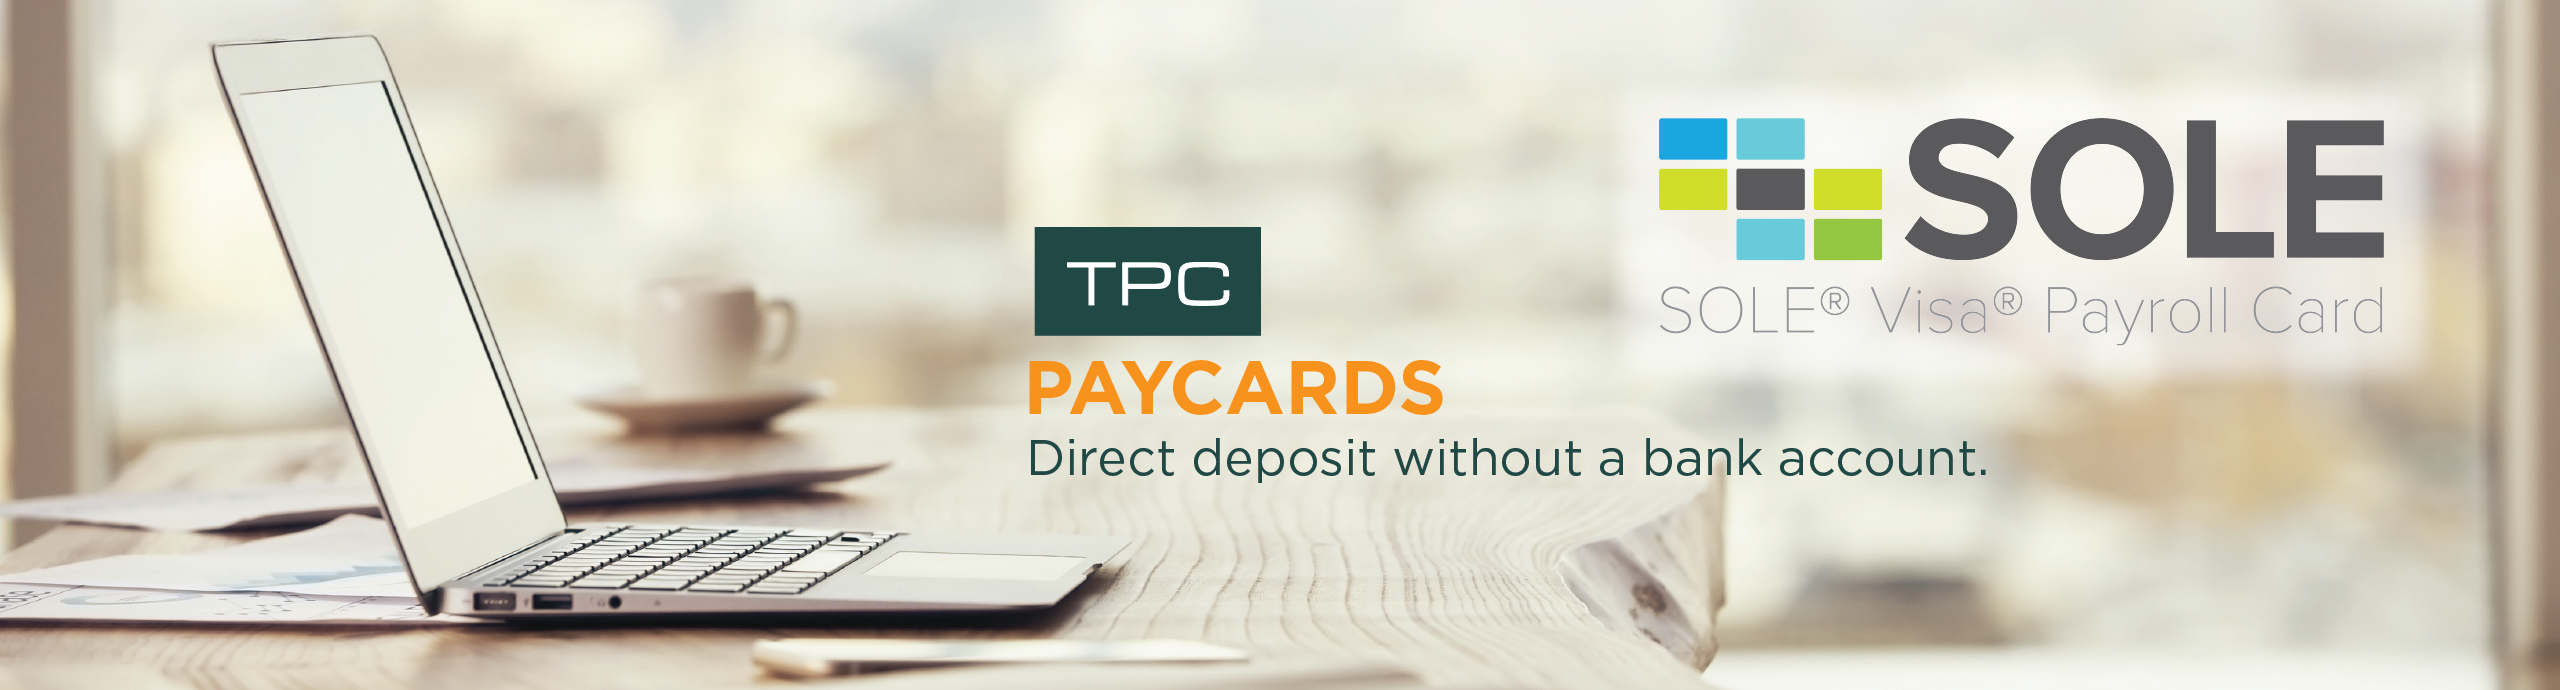 Paycards - HCM, 401(k), Human Resources, Staffing